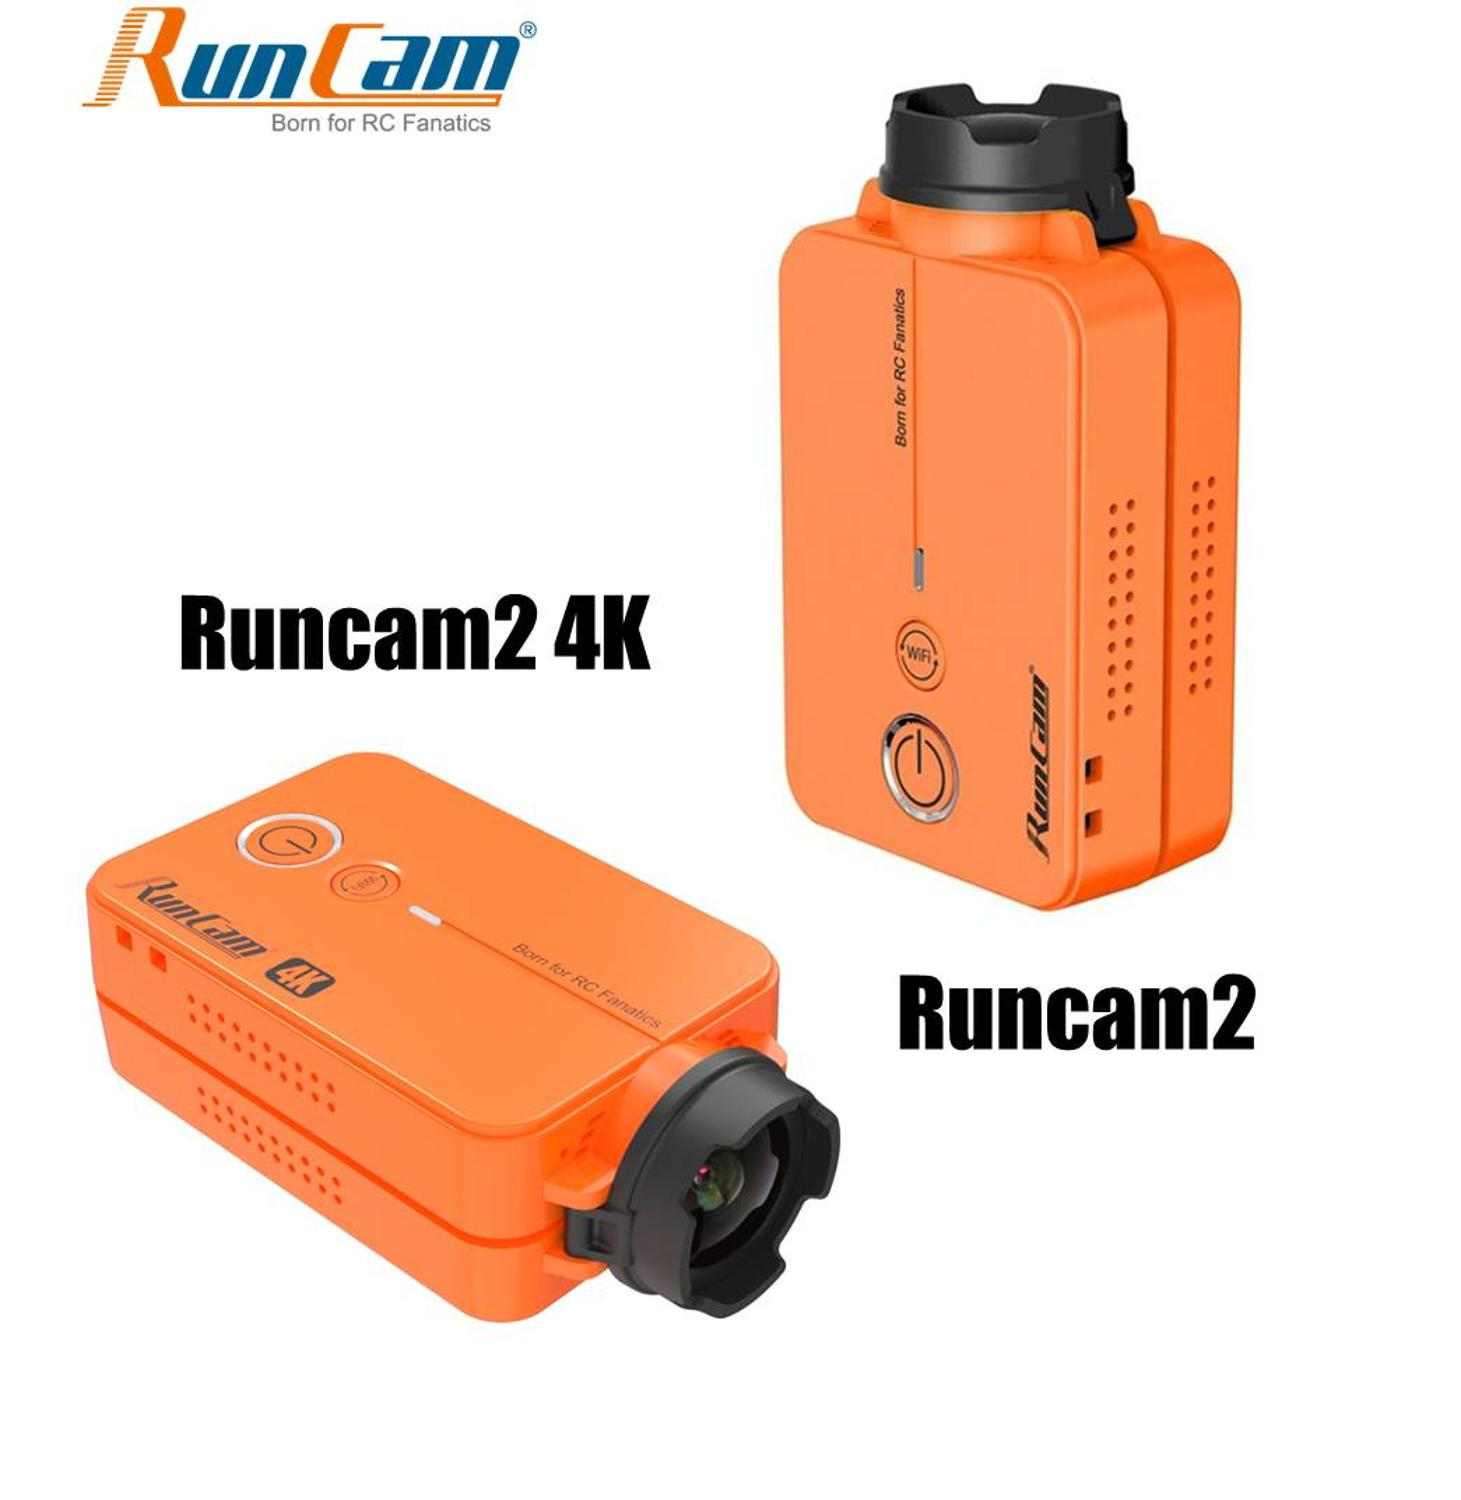 RunCam 2 HD Runcam2 4K Edition 1080P 120 Degree Wide Angle WiFi Sport Camera